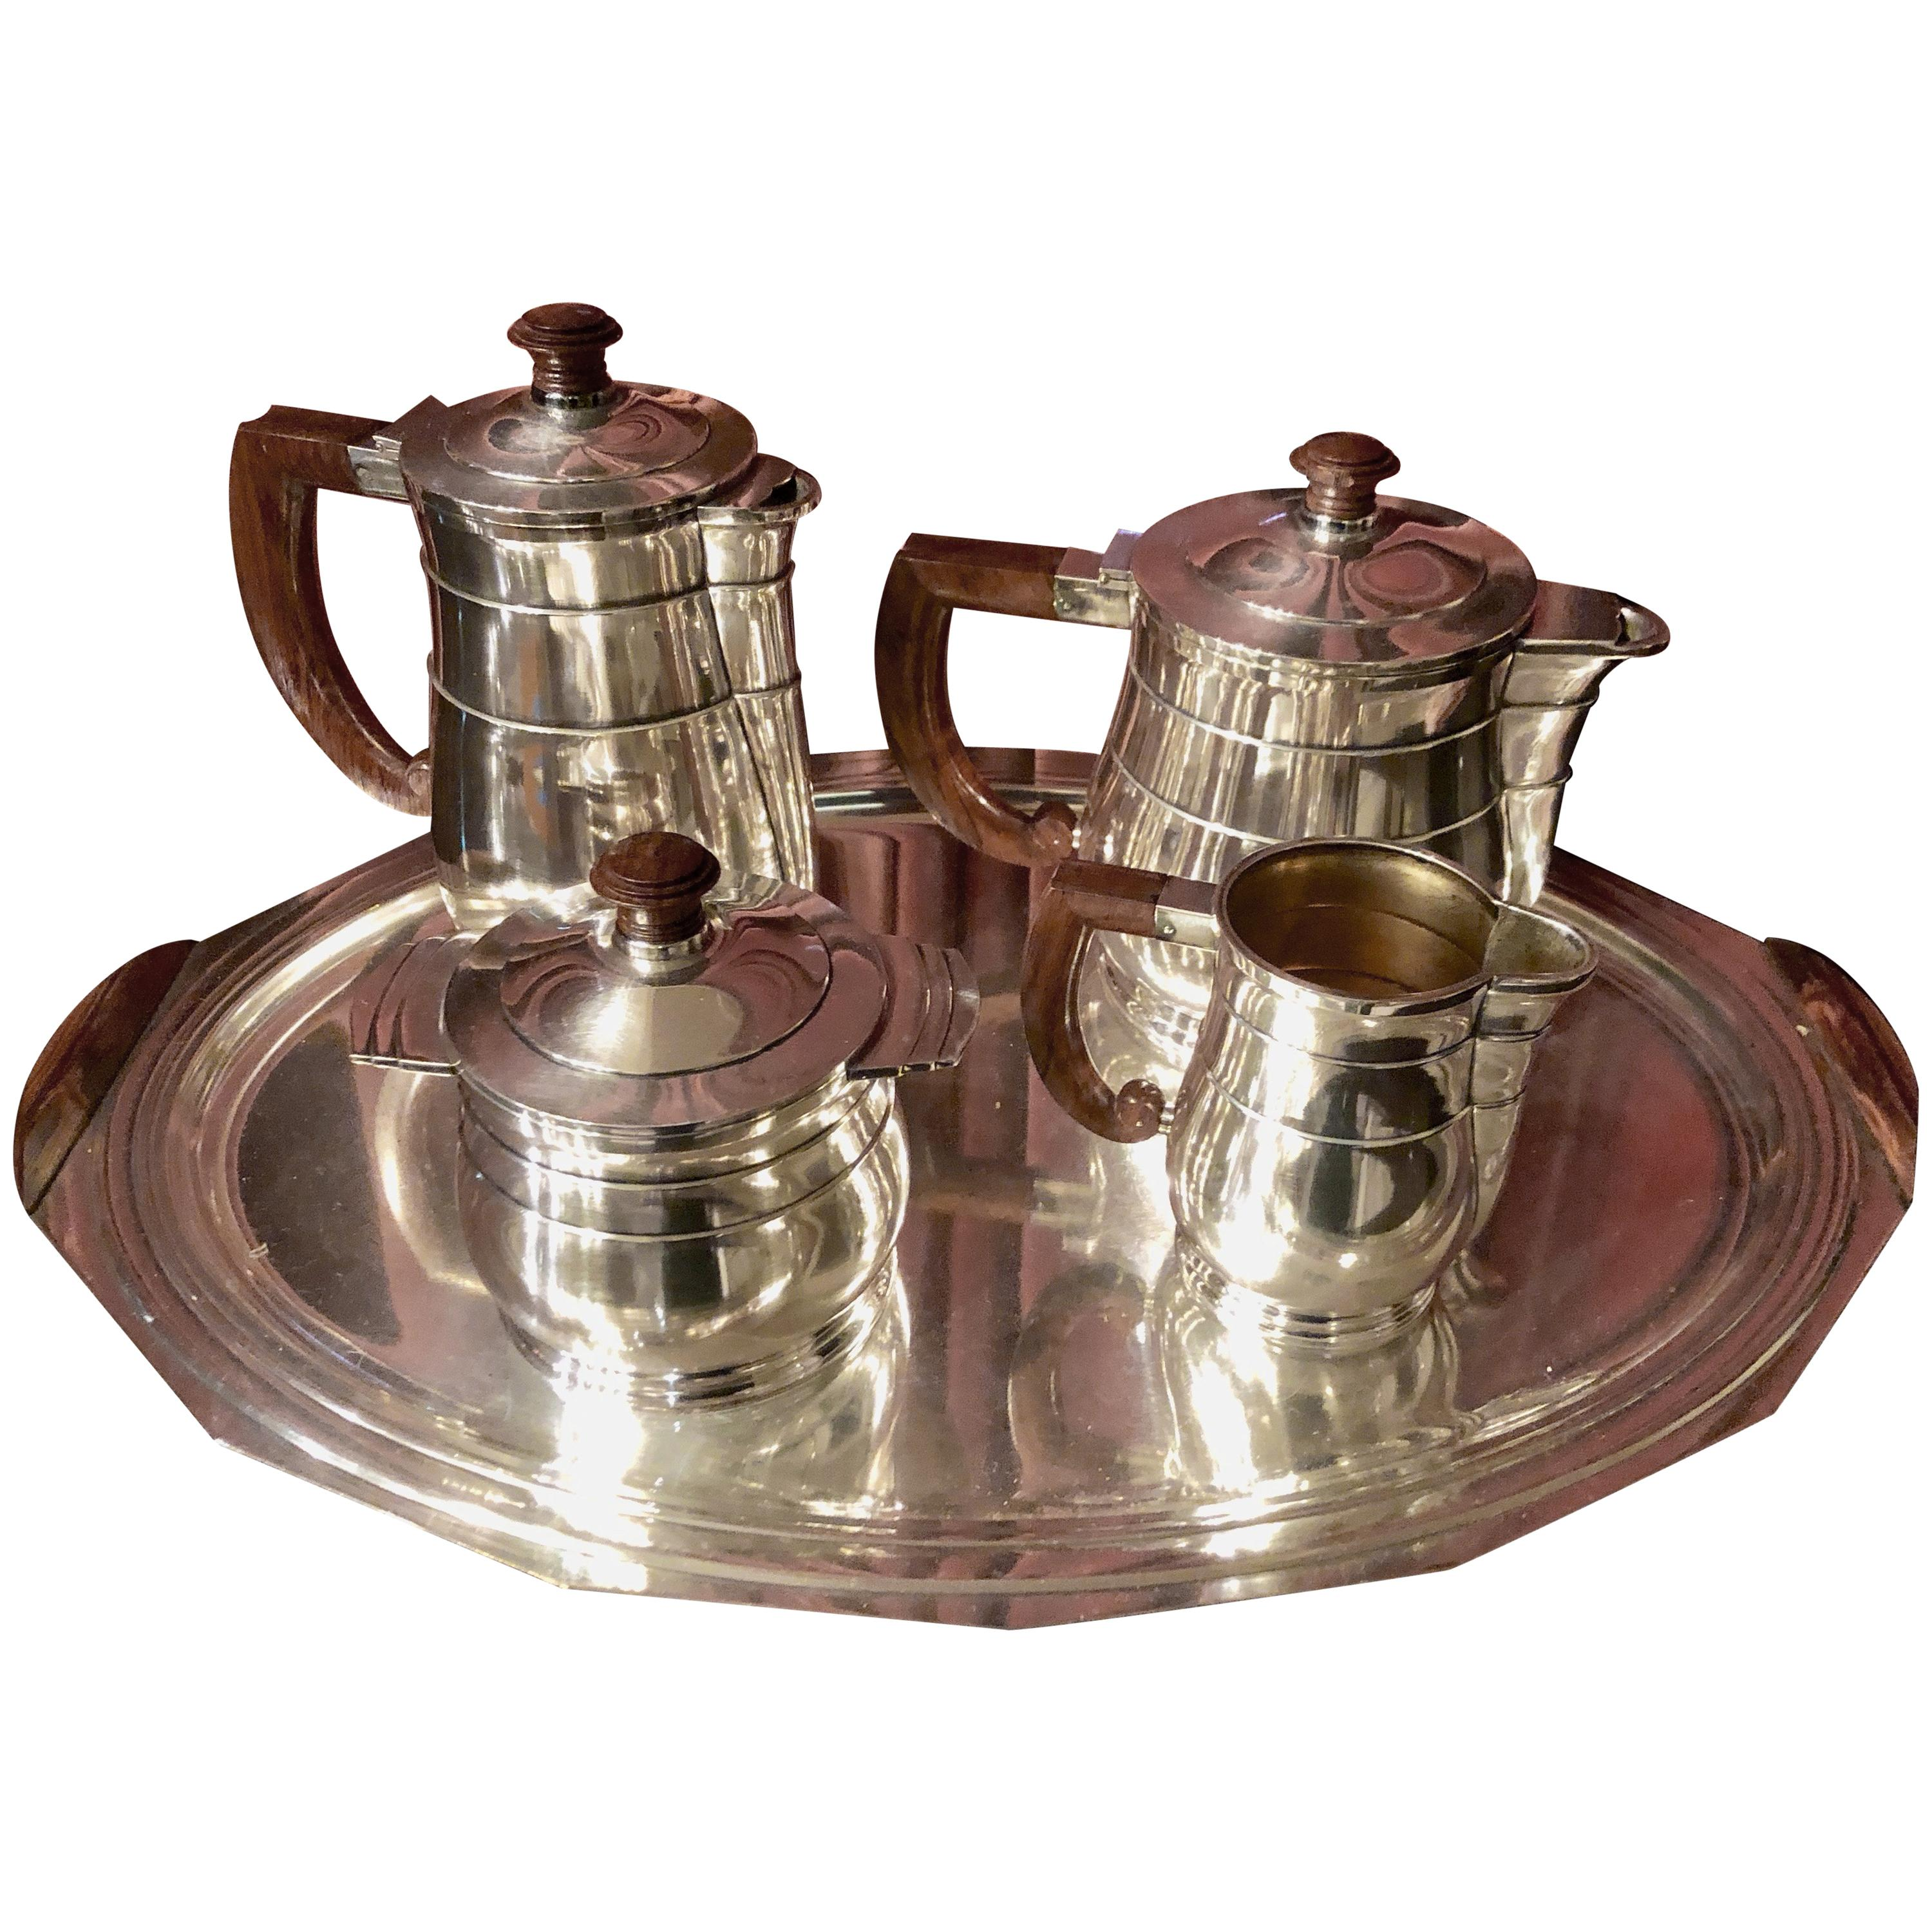 Five-Piece French Art Deco Silver Plated Tea and Coffee Service, 20th Century